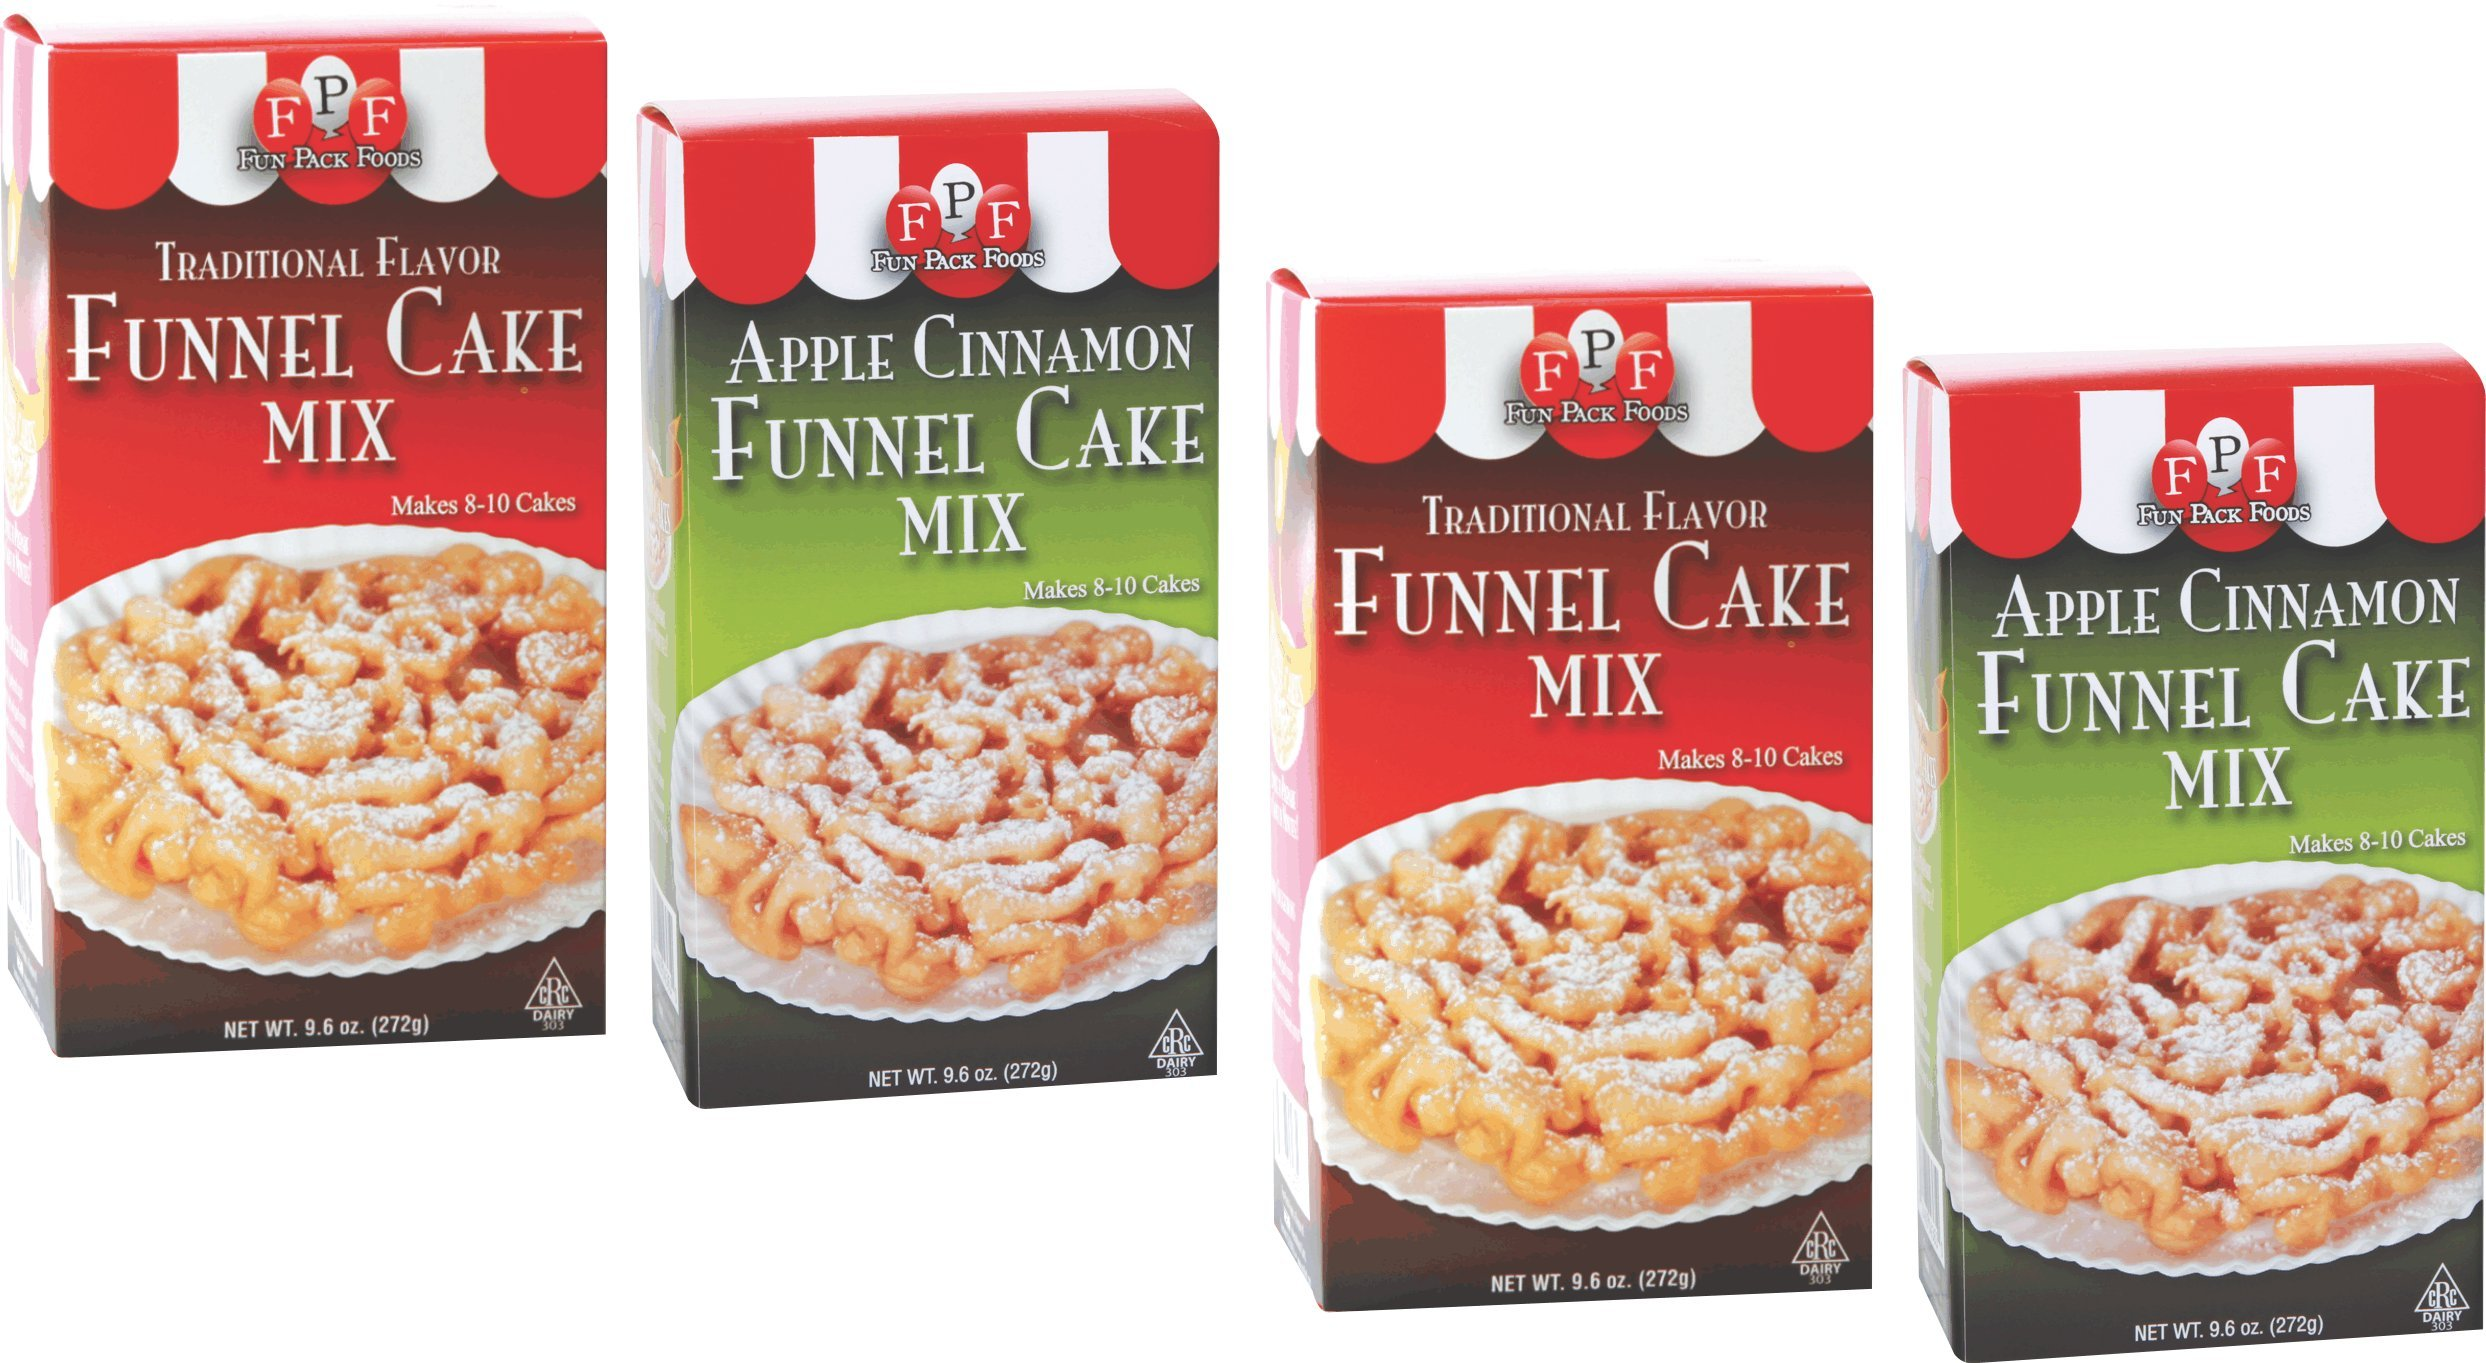 Fun Pack Foods - Traditional & Apple Cinnamon Funnel Cake Mixes (Pack of 4)